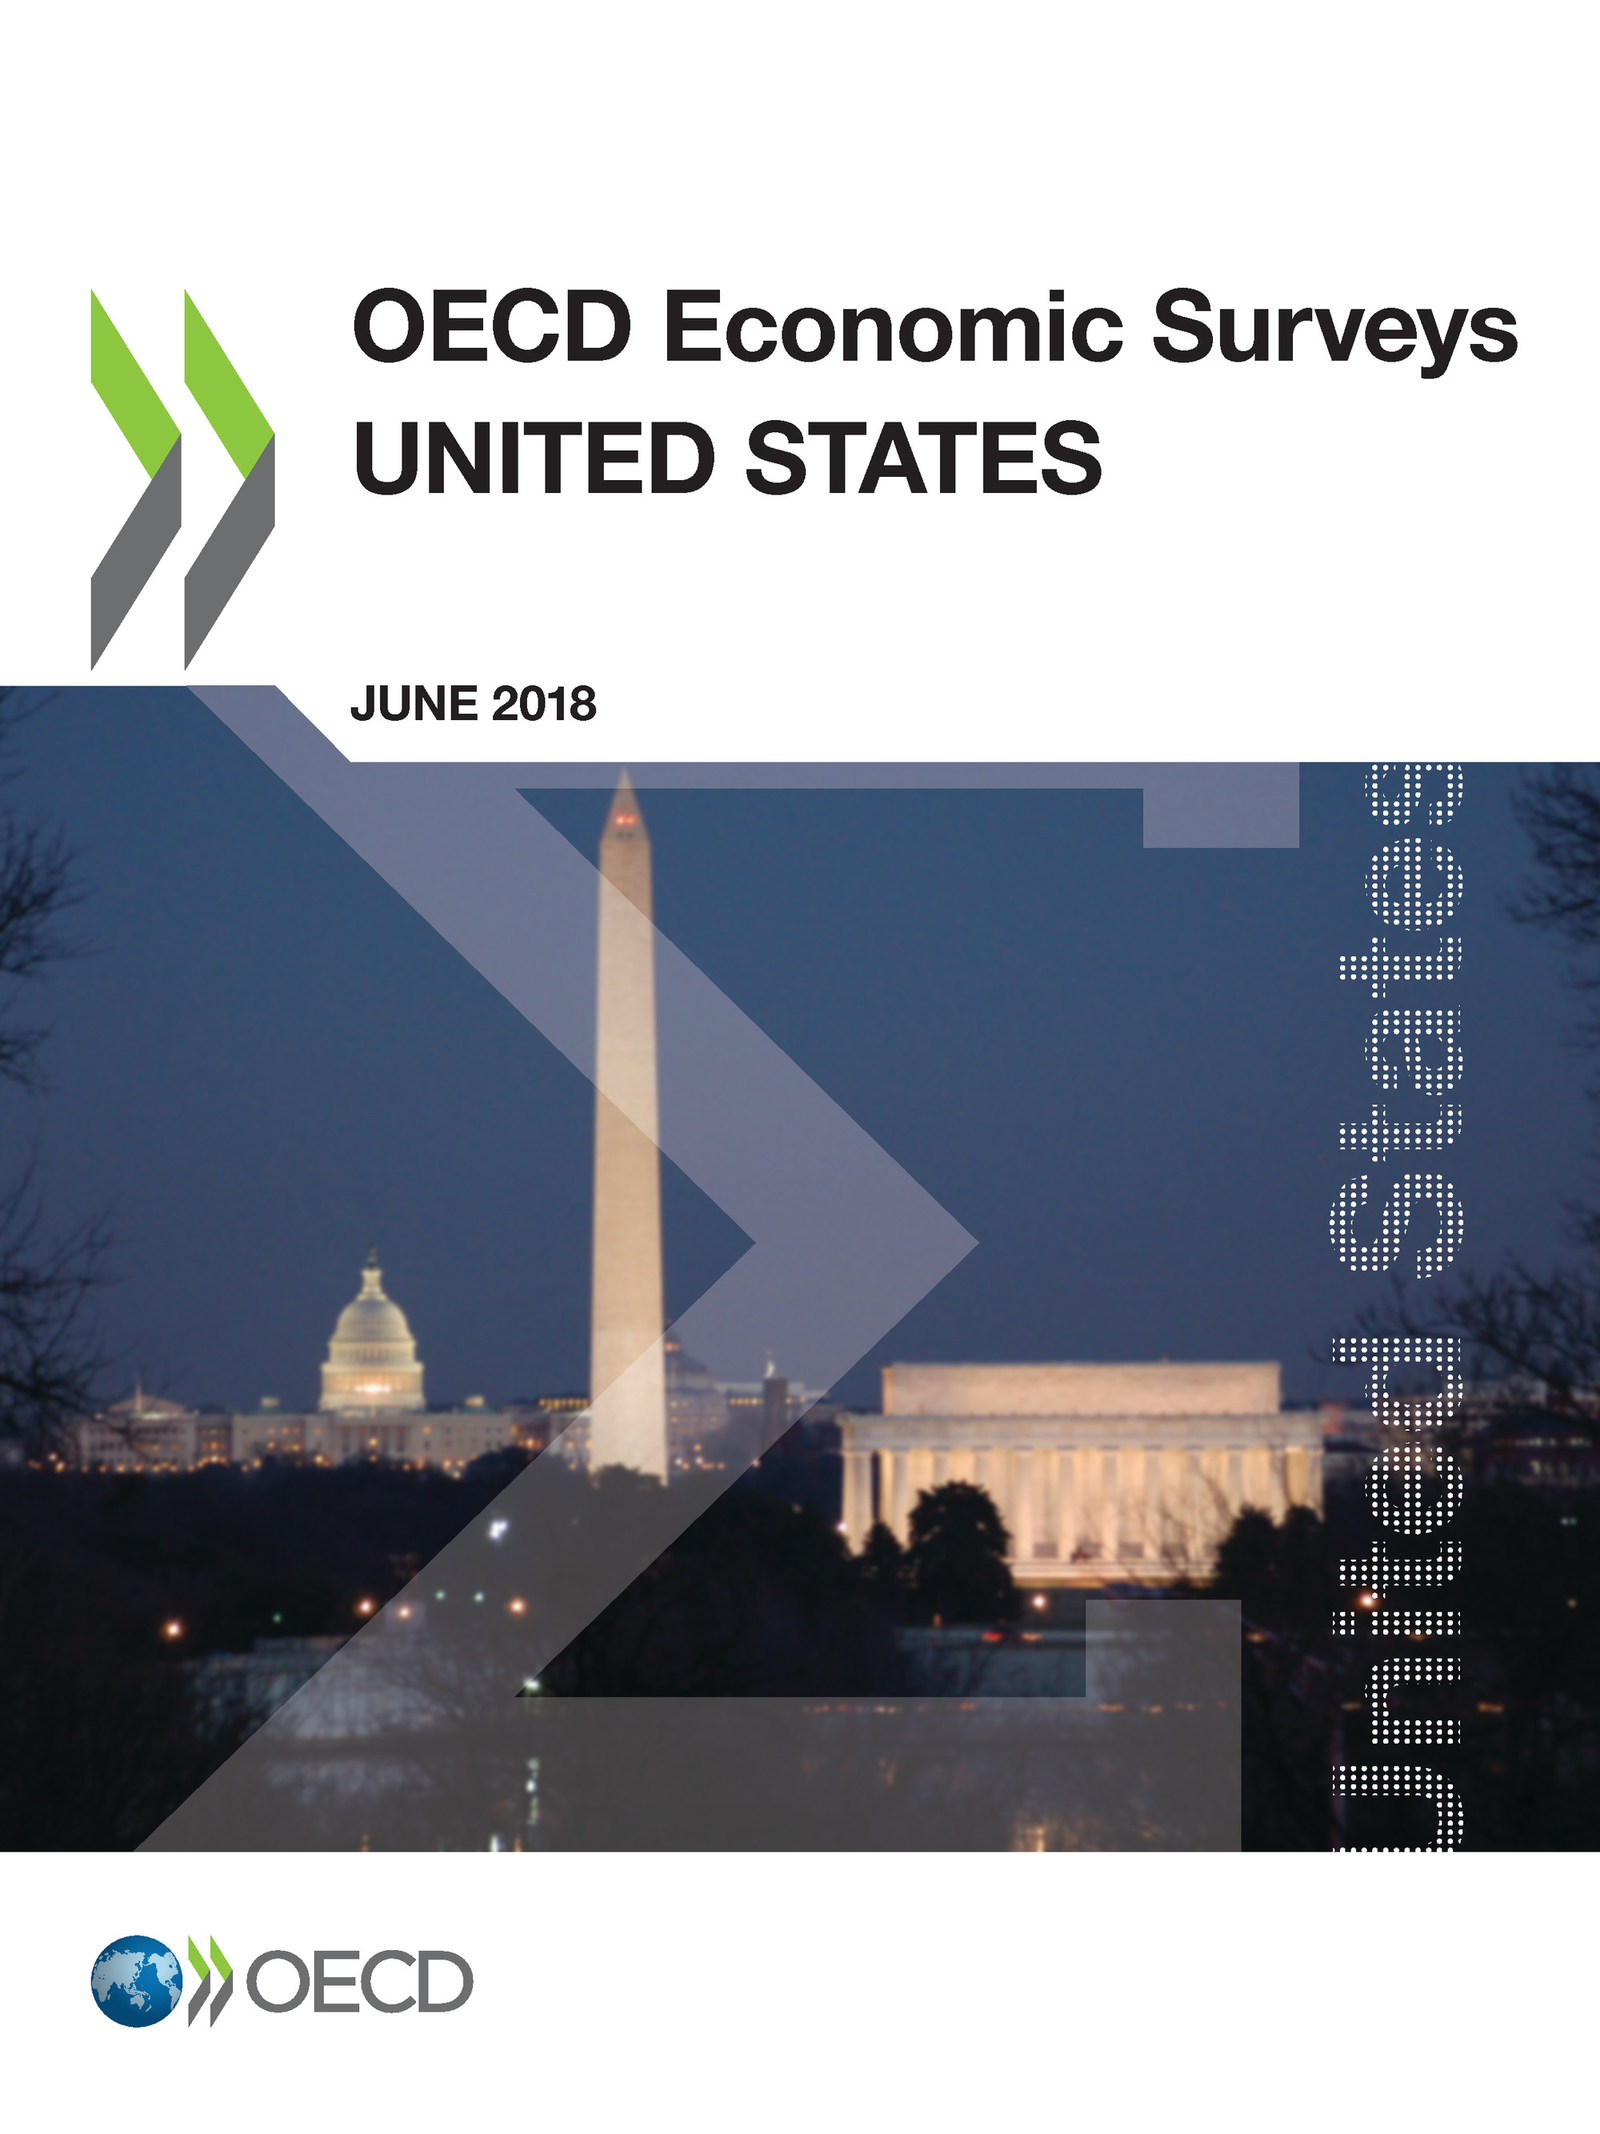 OECD Economic Surveys: United States 2018